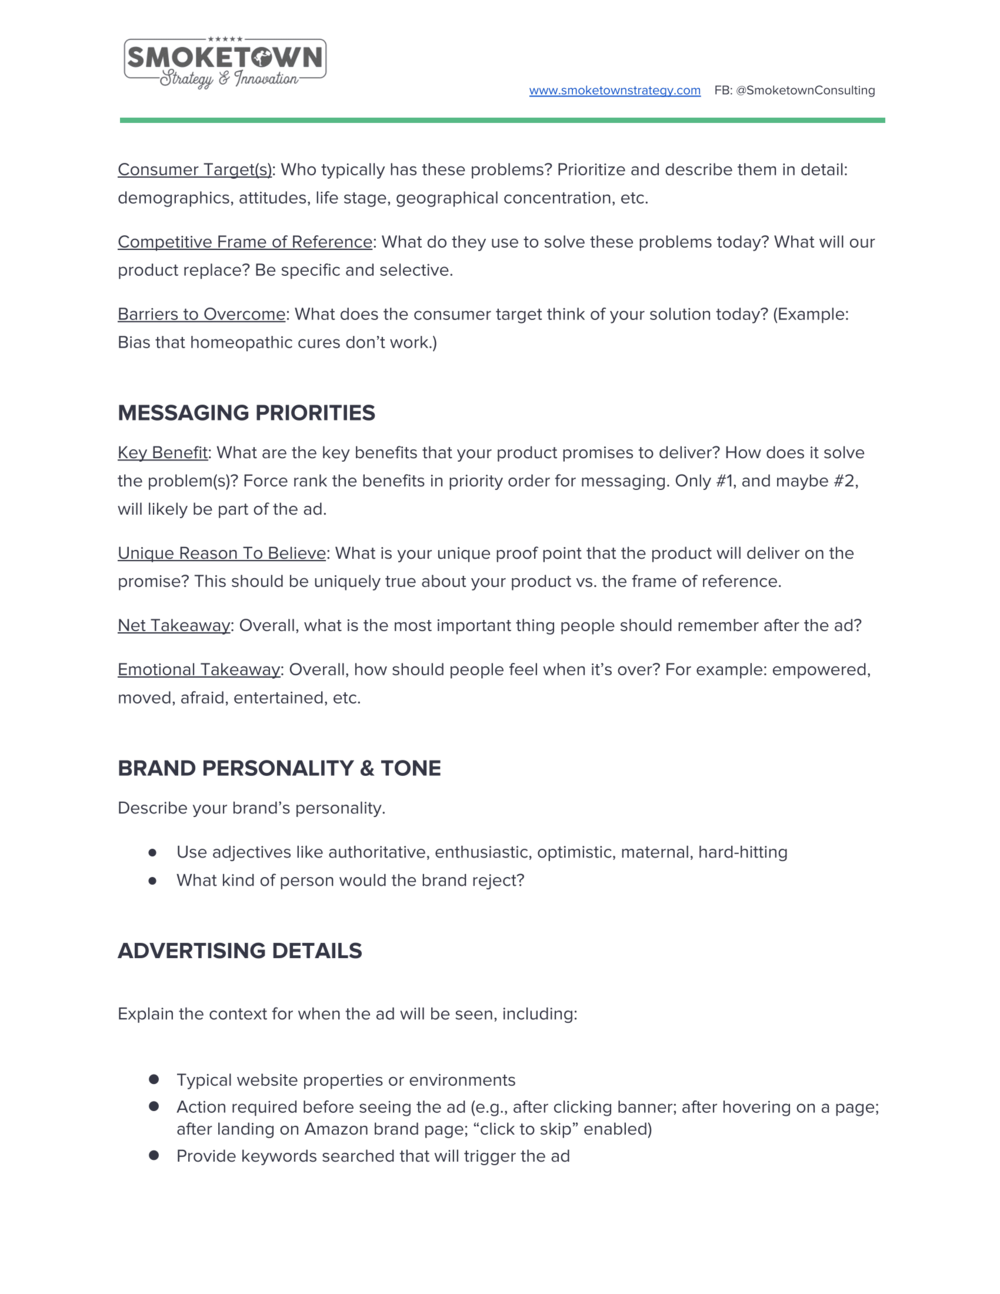 Creative Brief for Advertising-2.png